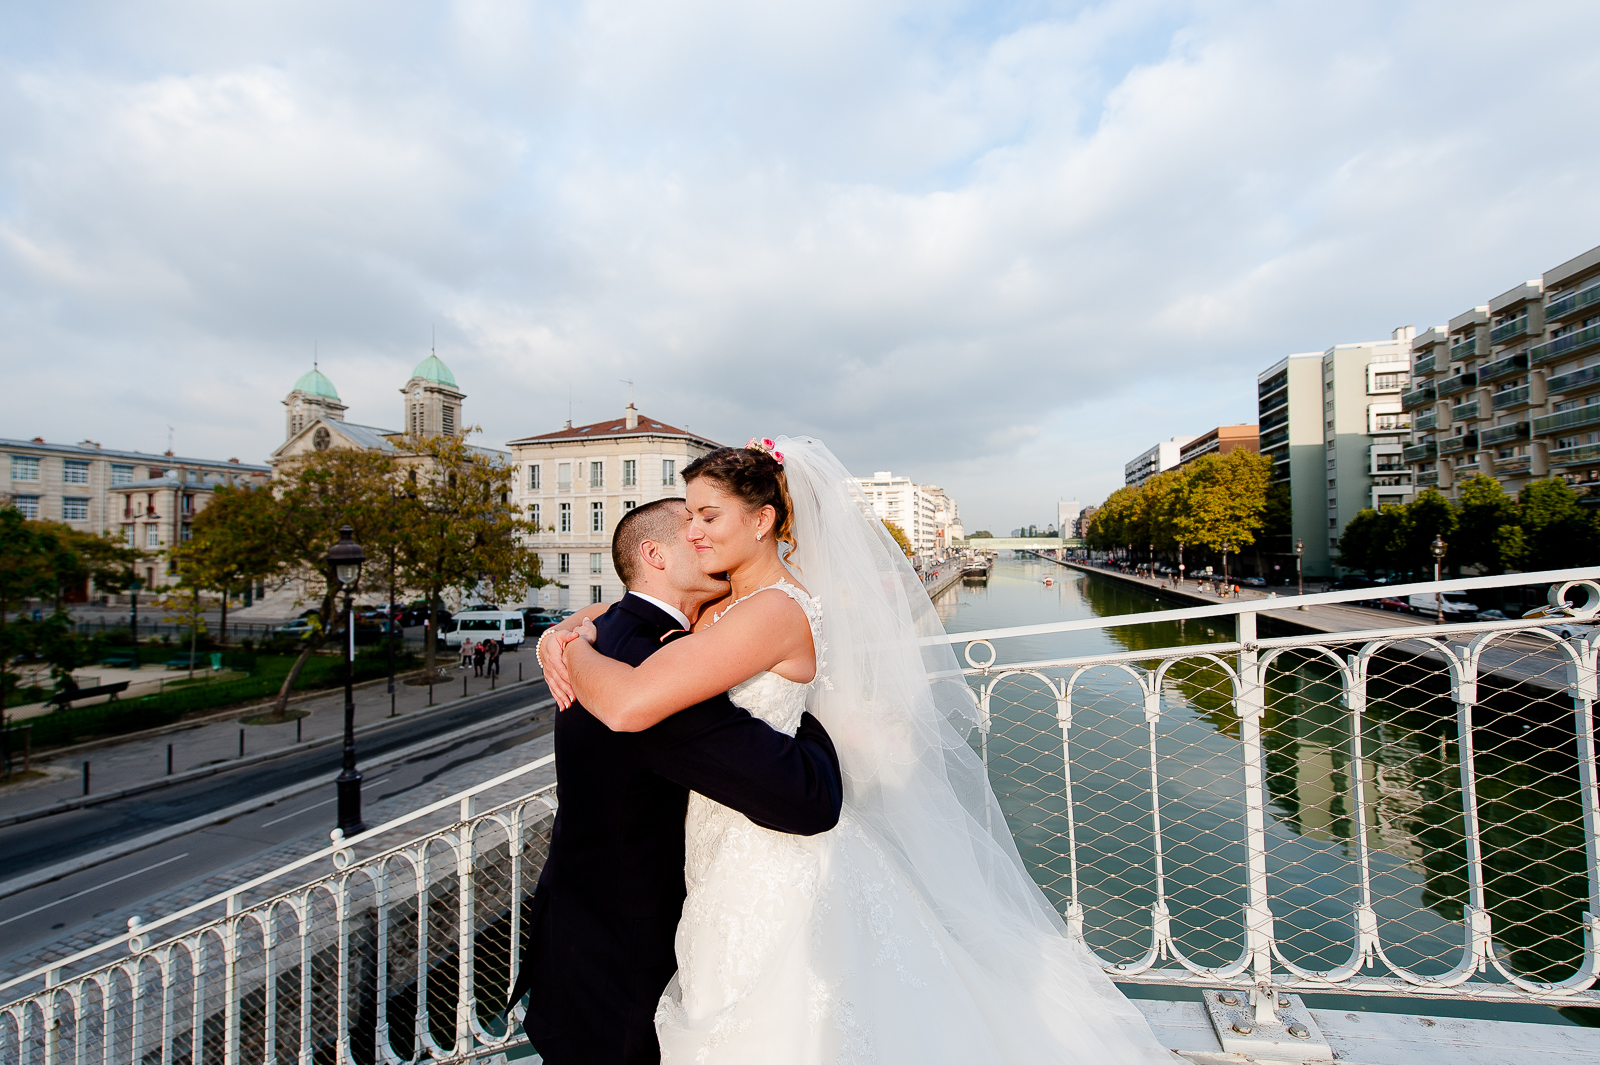 photographe de mariage ile de france paris